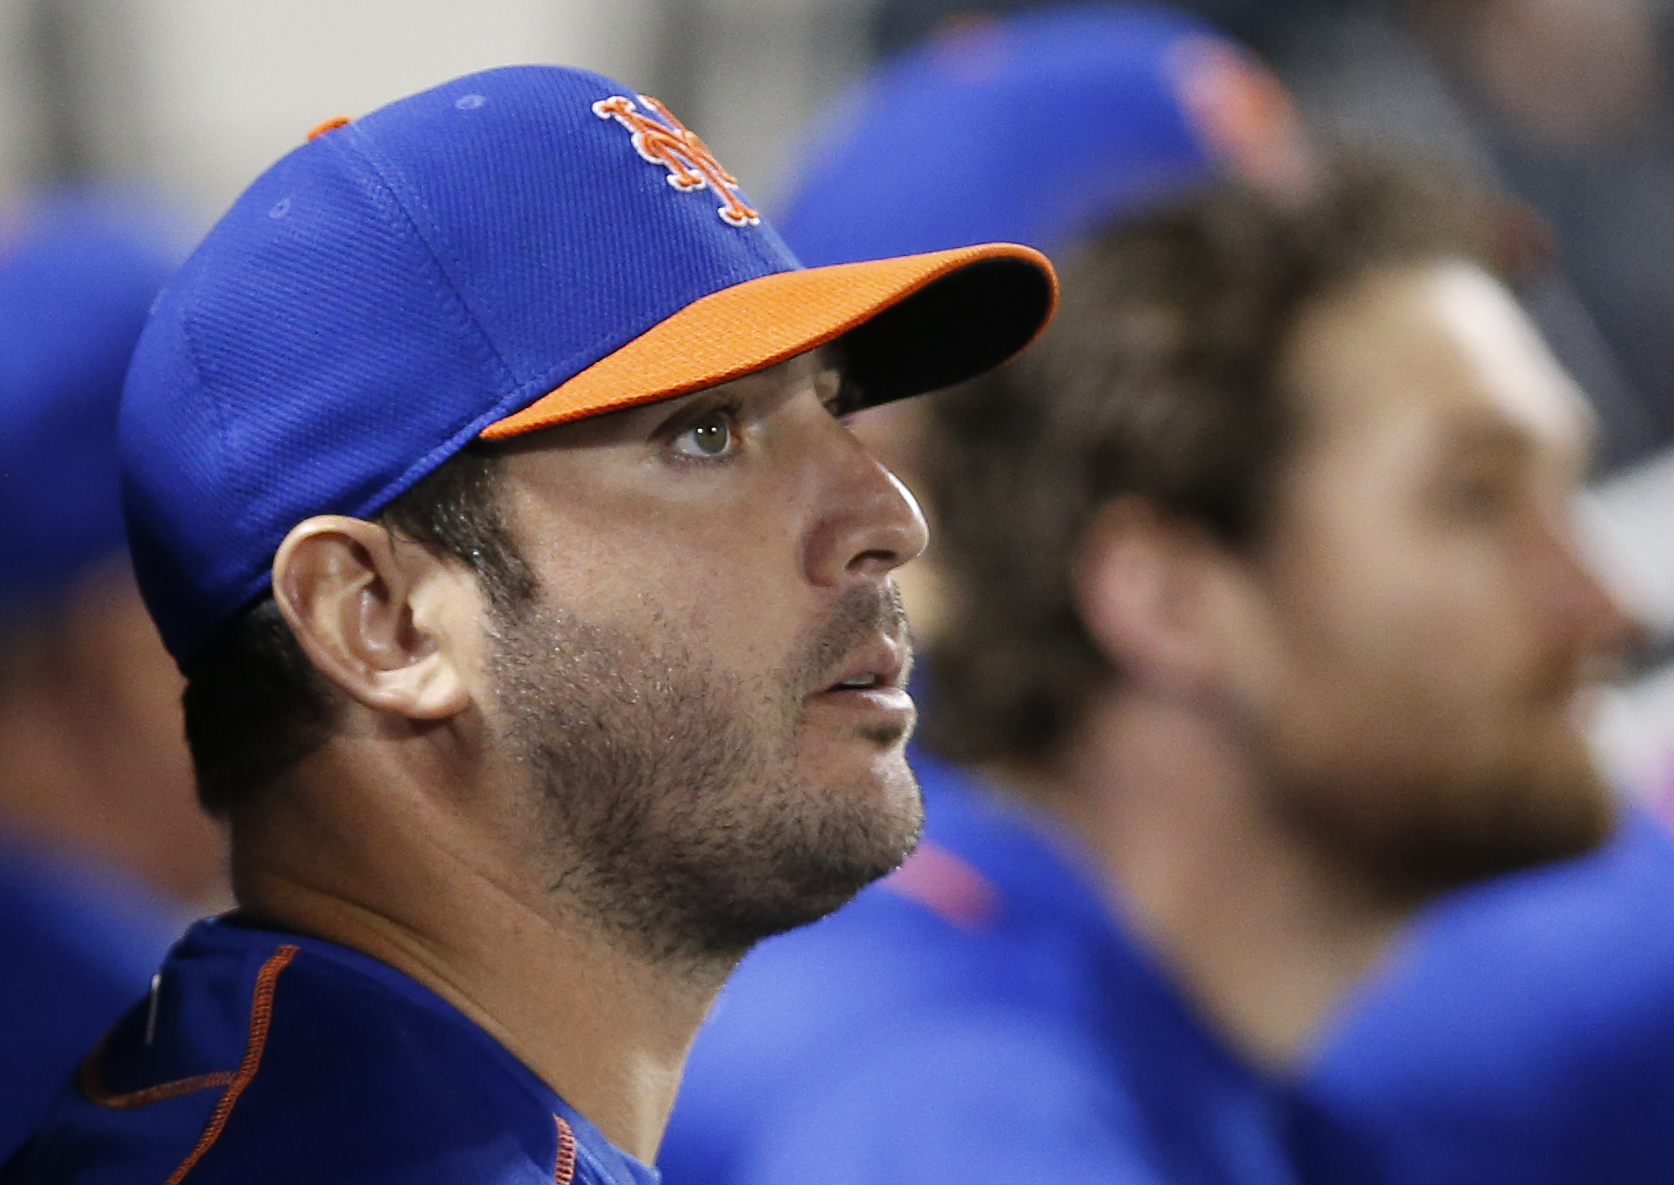 New York Mets starting pitcher Matt Harvey watches from the dugout in the ninth inning of the Mets' 11-2 loss to the New York Yankees in a baseball game in New York, Sunday, Sept. 20, 2015. (AP Photo/Kathy Willens)